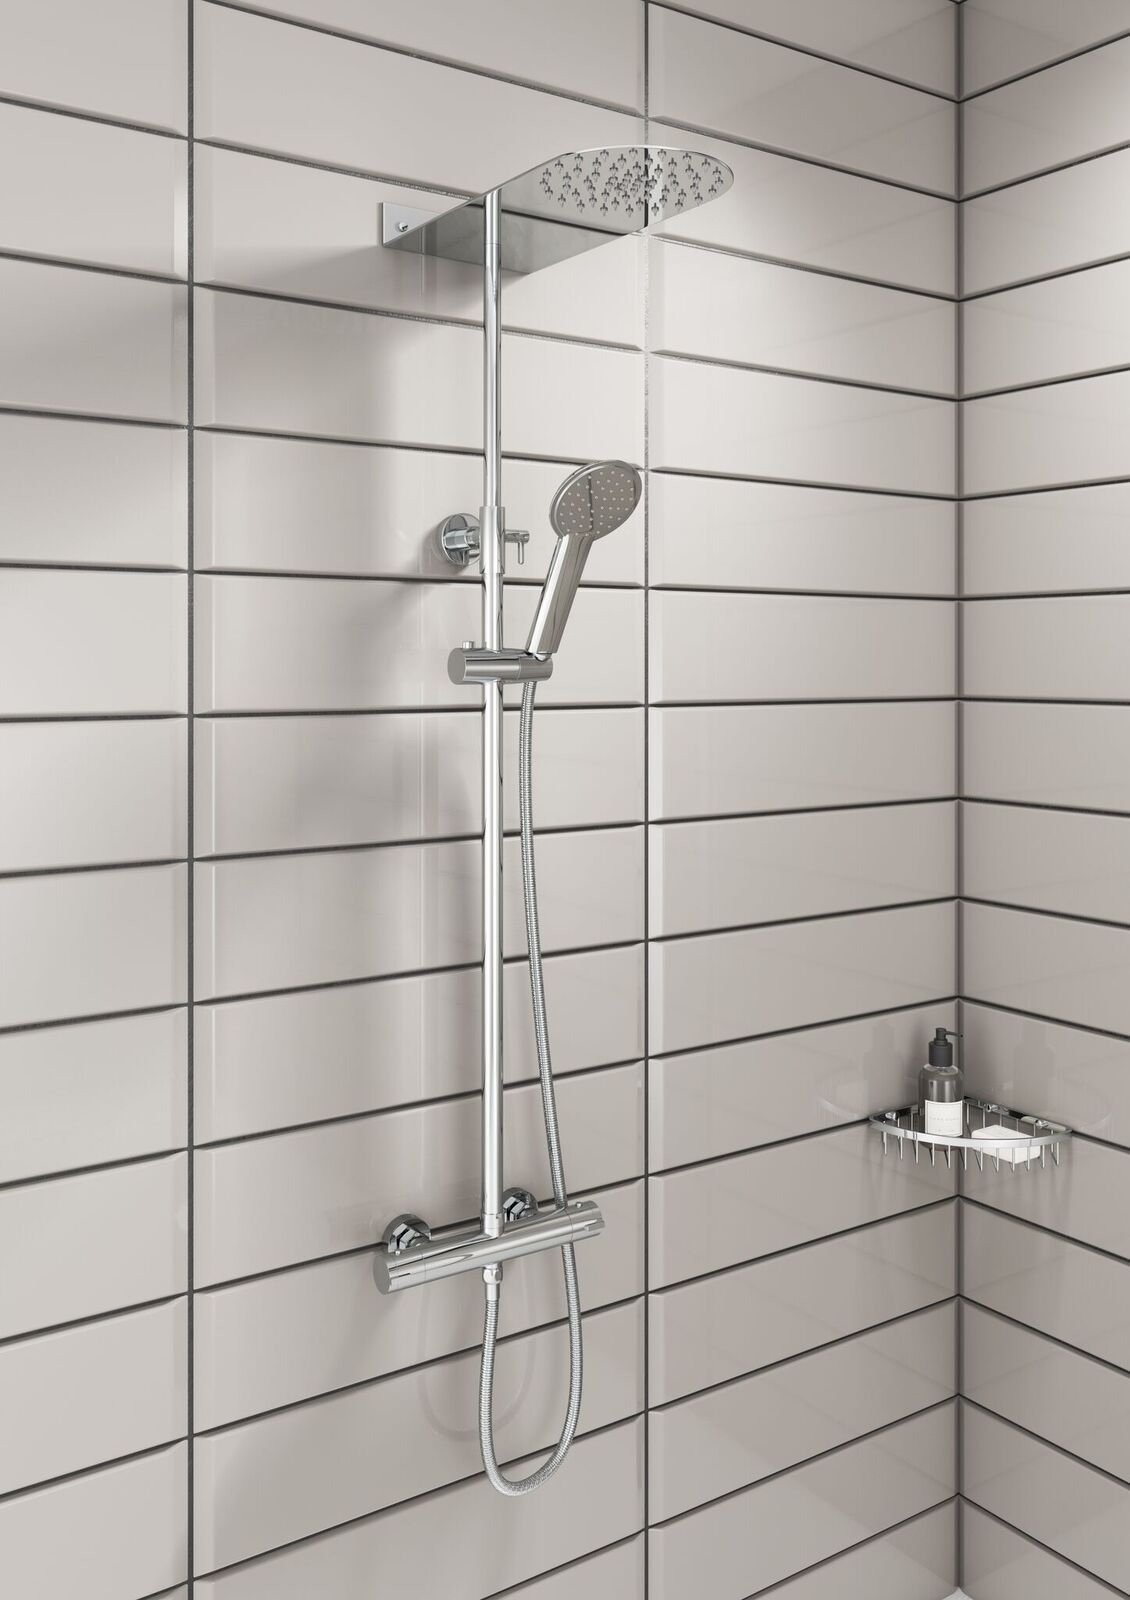 Cassellie Blade Round Thermostatic Complete Mixer Shower - Chrome